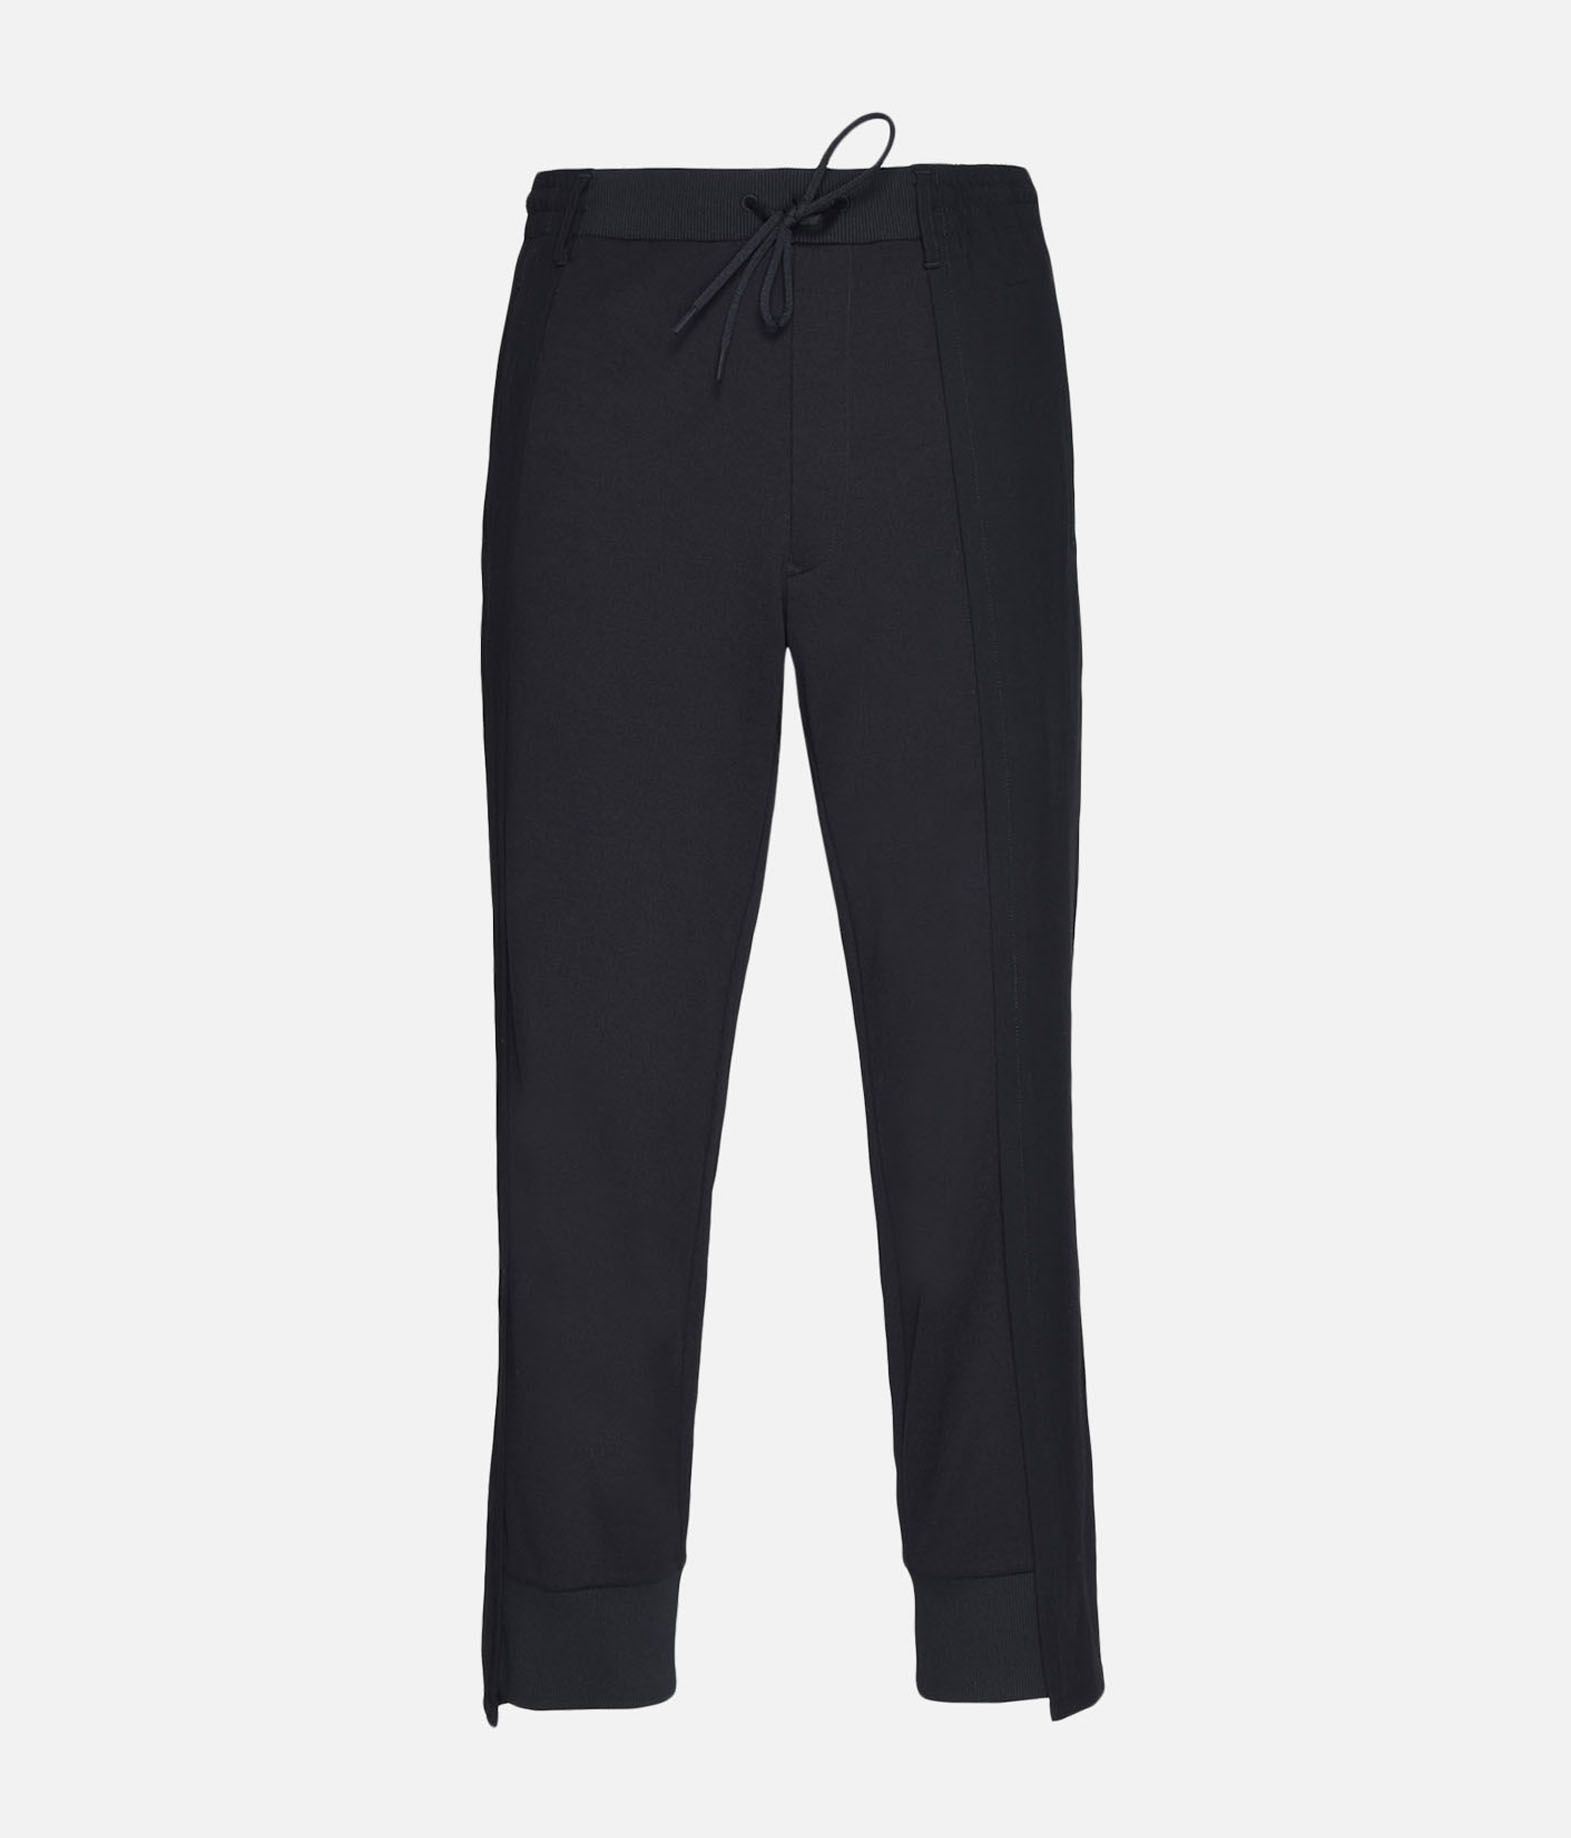 Y-3 Y-3 Patchwork Pants Casual trouser Man f